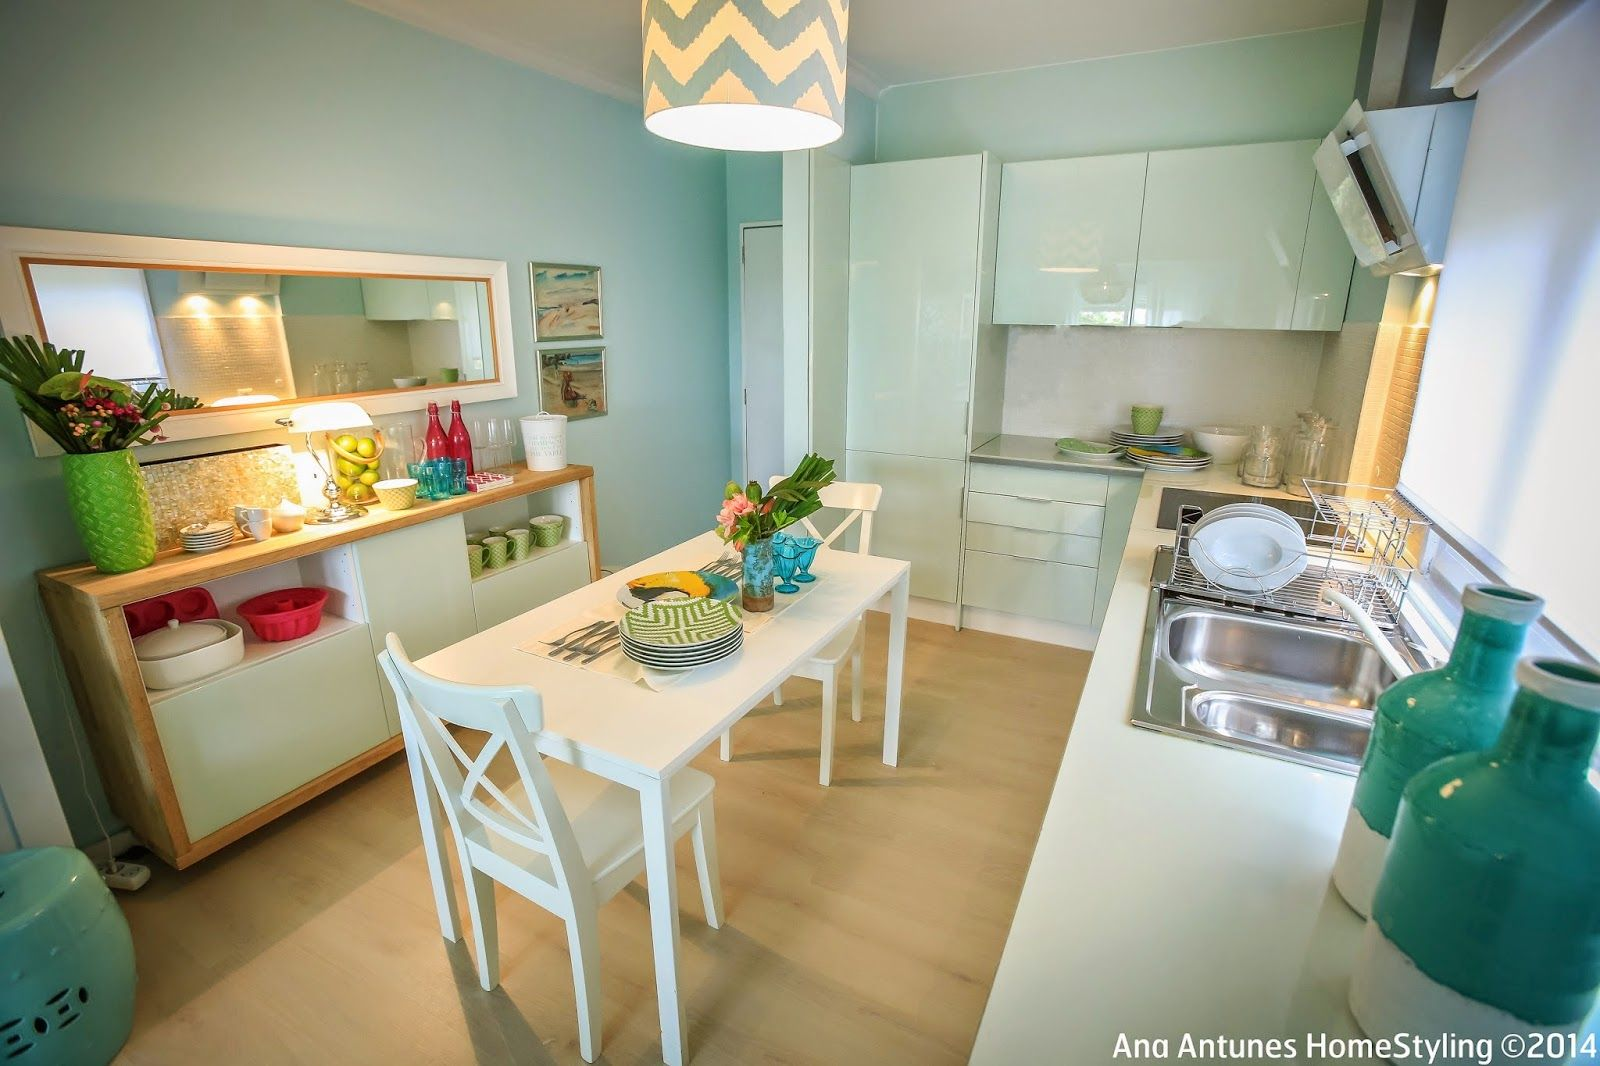 Home-Styling: Querido Mudei a Casa Tv Show #2313 - Before and After ...